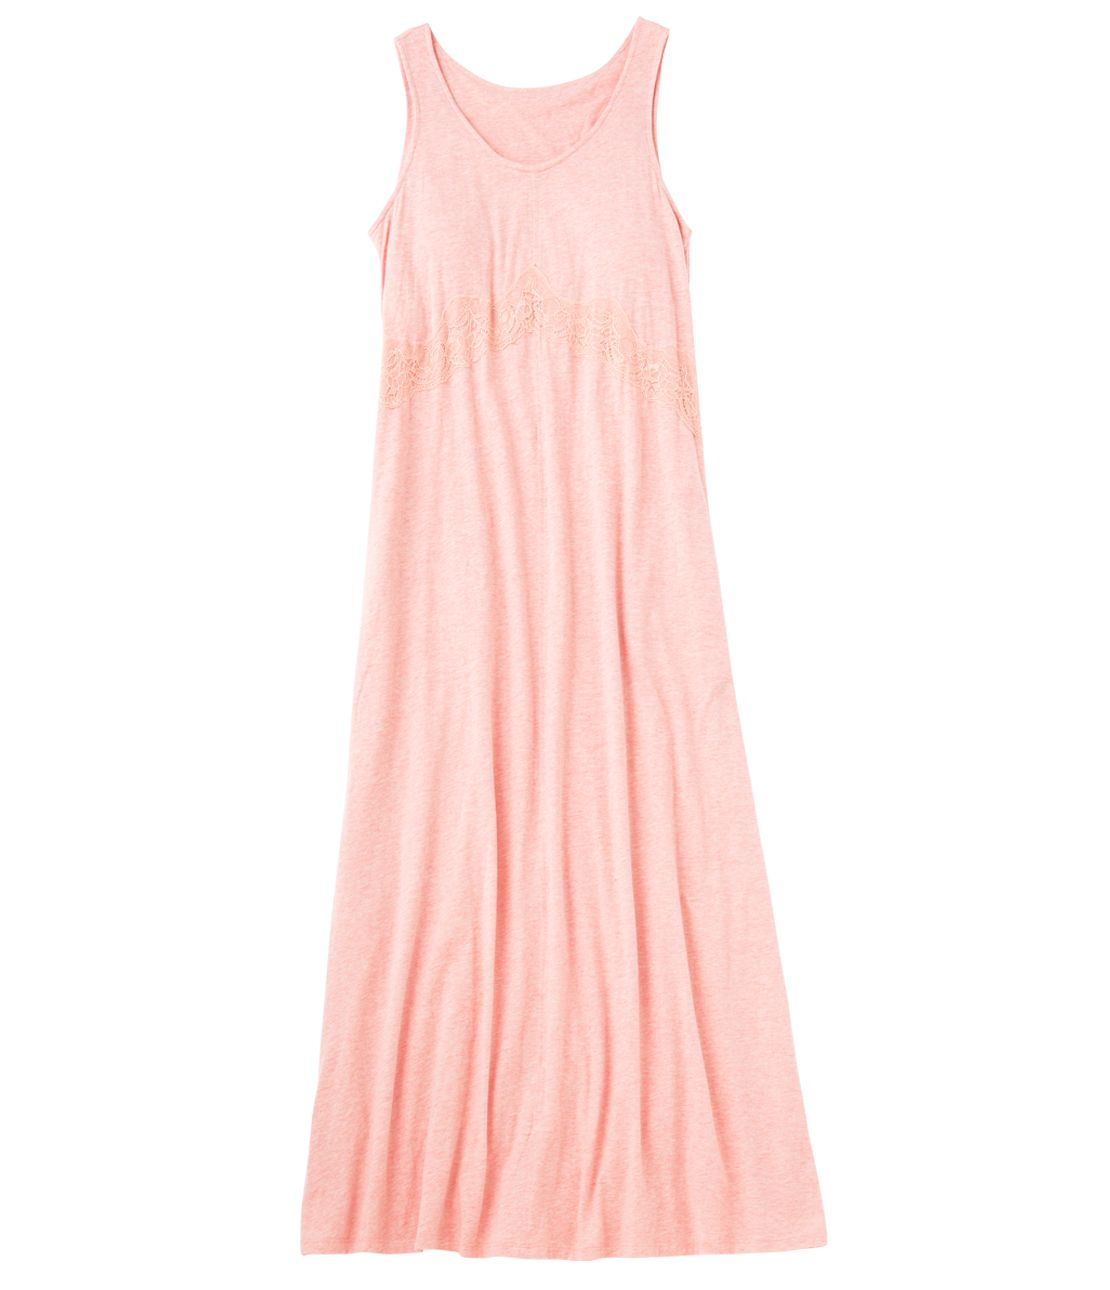 Dept Maxi Jurk.Flower Path Debt Maxi Dress To Wear Peachjohn Worldshopping